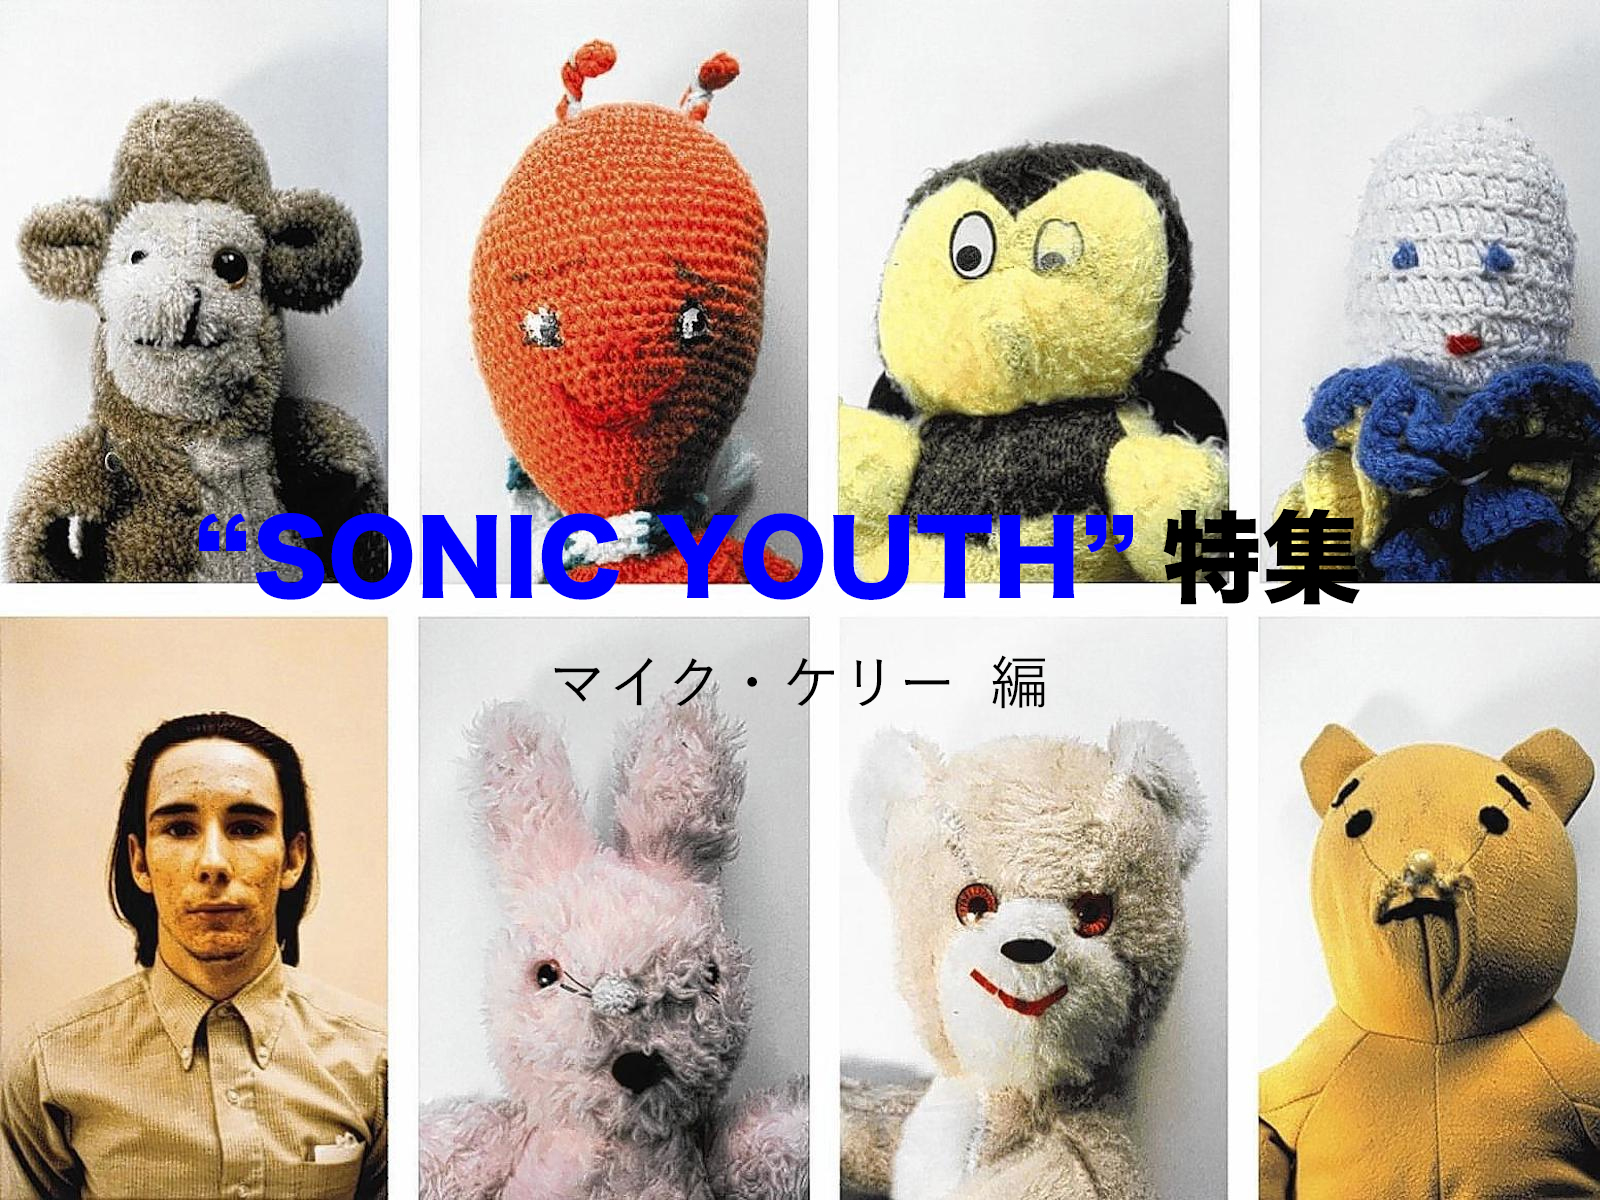 """SONIC YOUTH"" 特集 : MIKE KELLEY (マイク・ケリー) 編"